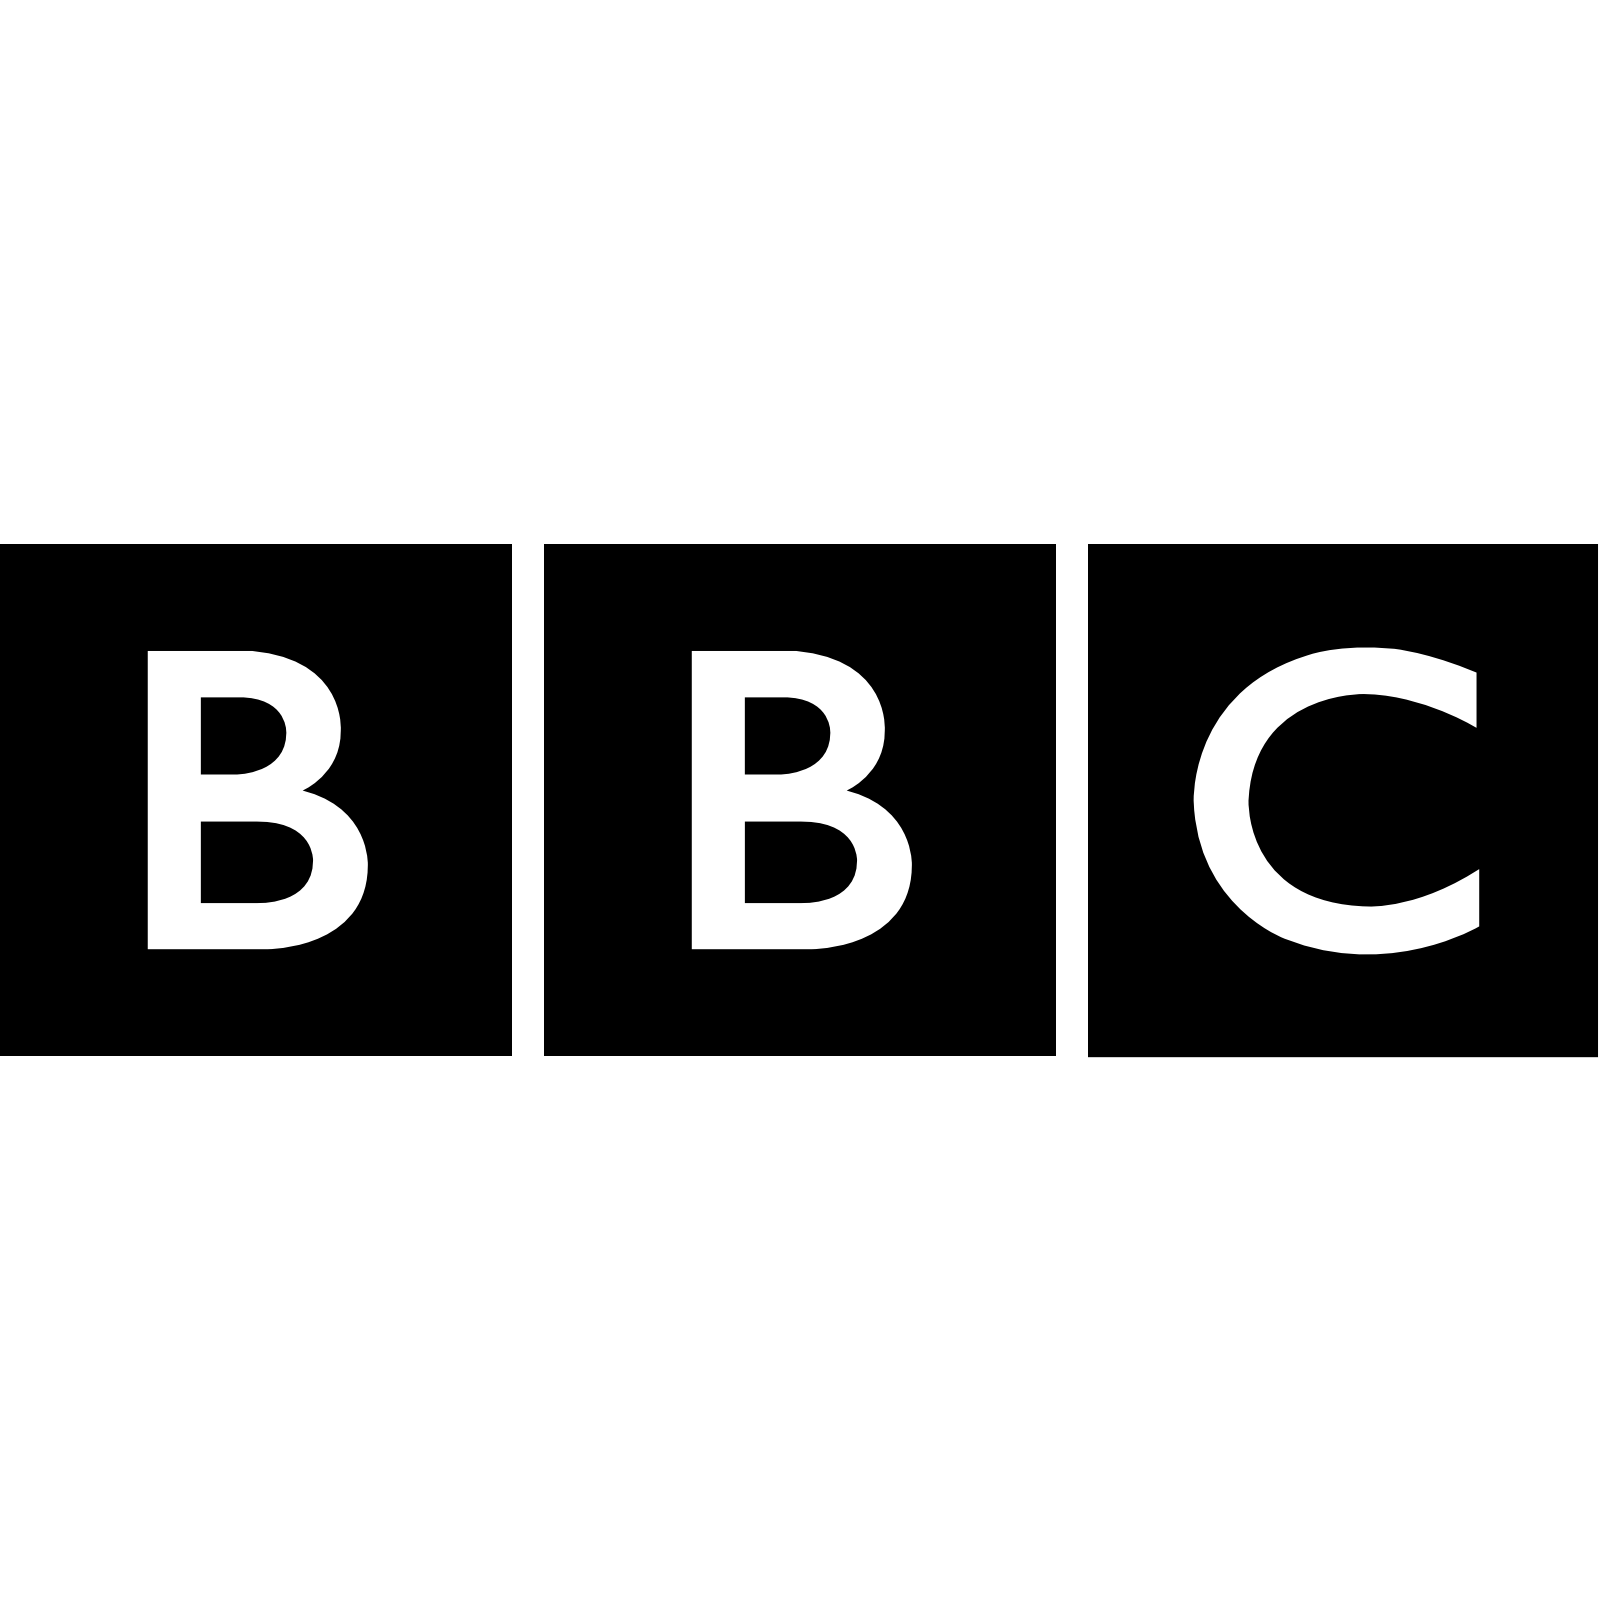 kisspng-computer-icons-logo-of-the-bbc-bbc-world-news-uc-browser-5b35c151c00e08.2135425415302495537867.png